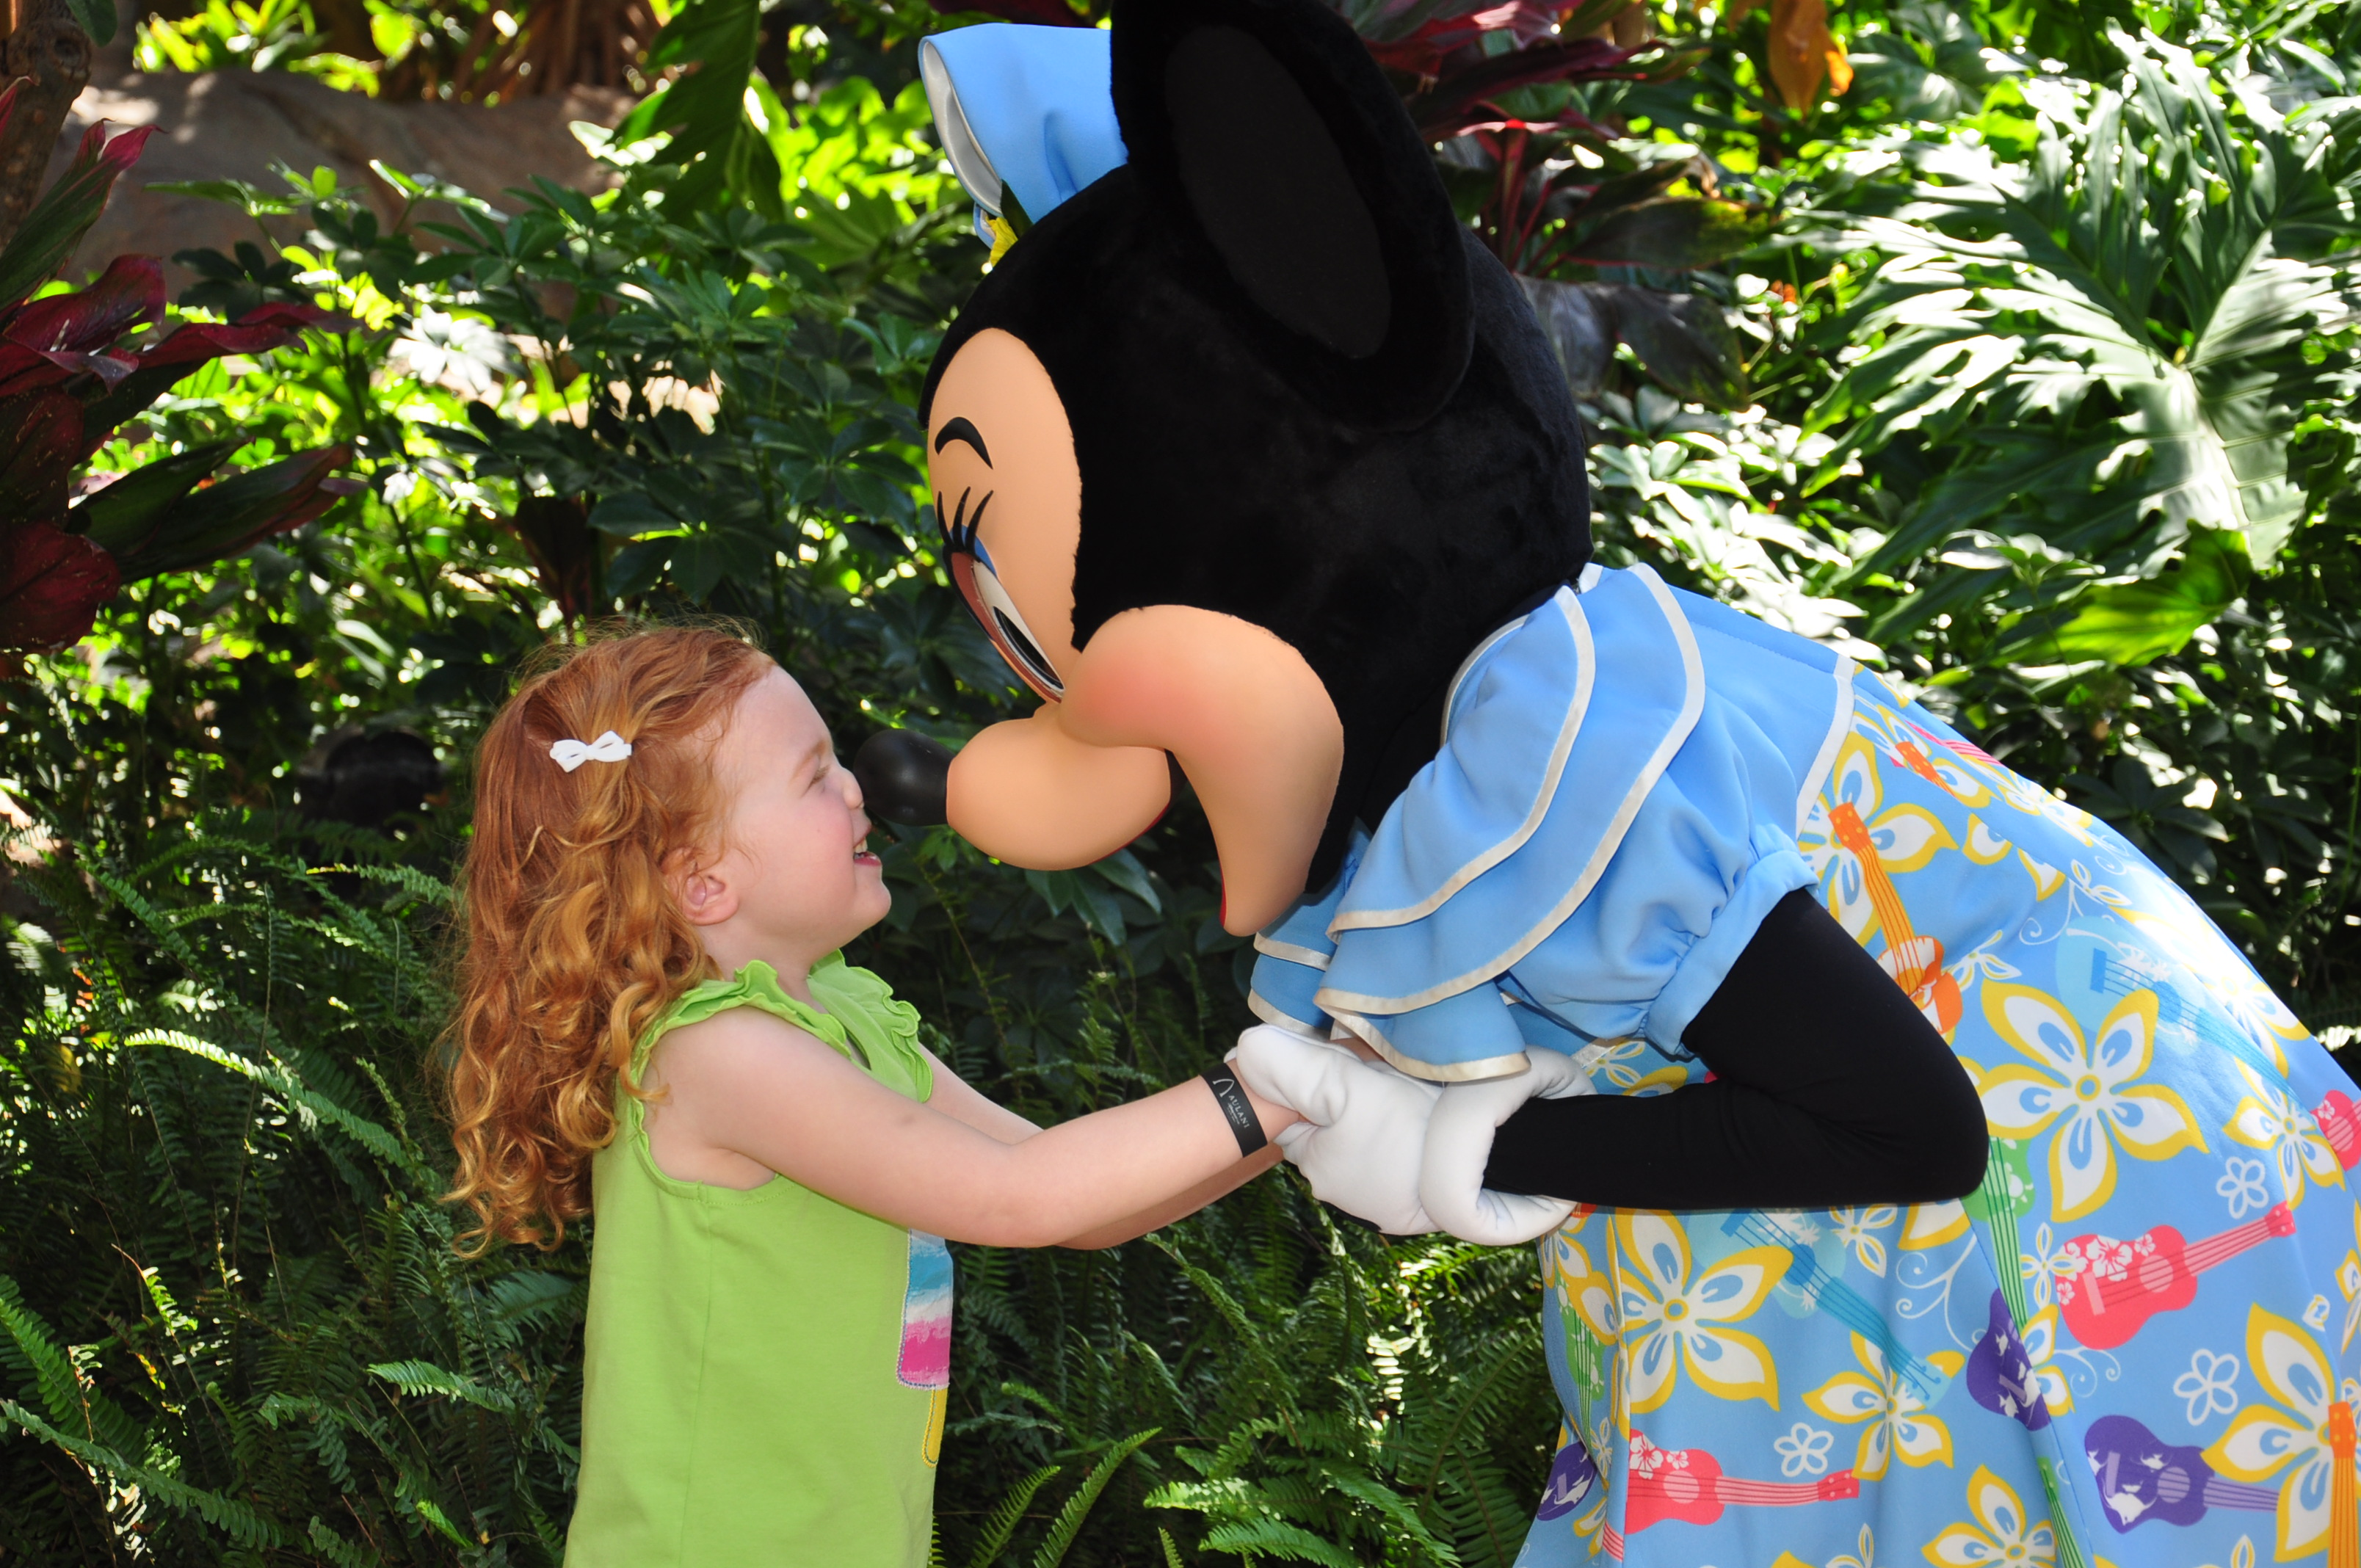 Our little one couldn't get enough of Minnie Mouse!